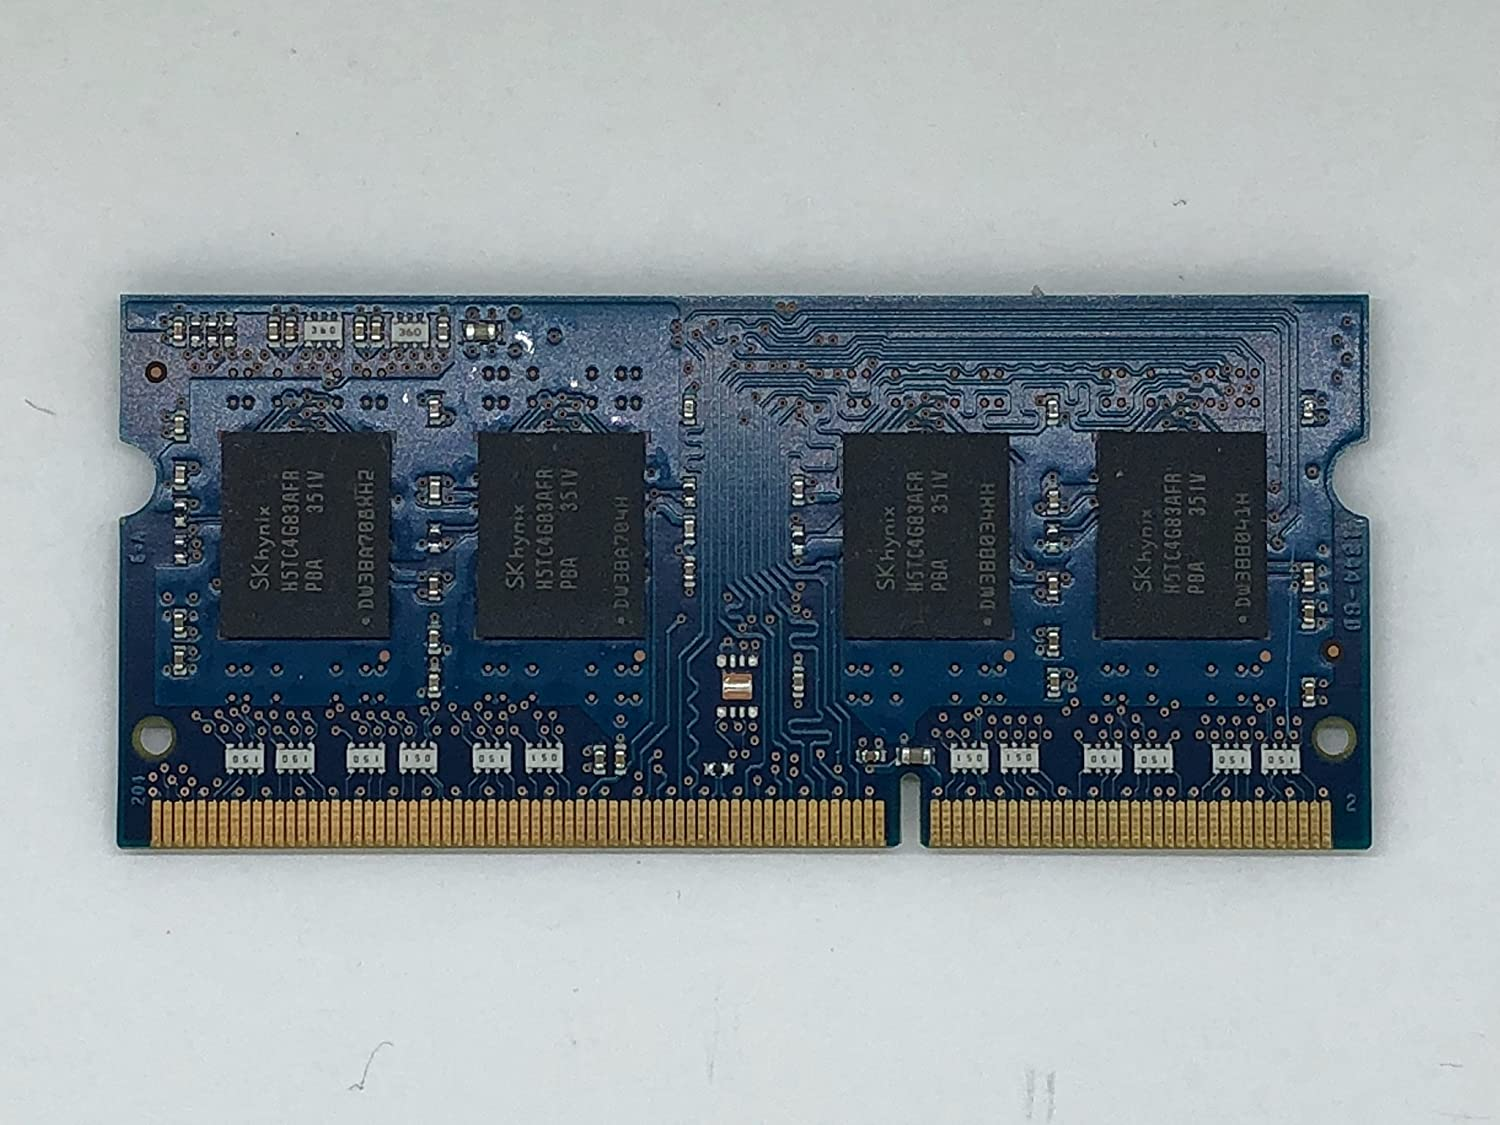 Best Ddr4 Ram 2020.4gb Ram For Dell Inspiron One 2020 1x4gb Memory B13 At